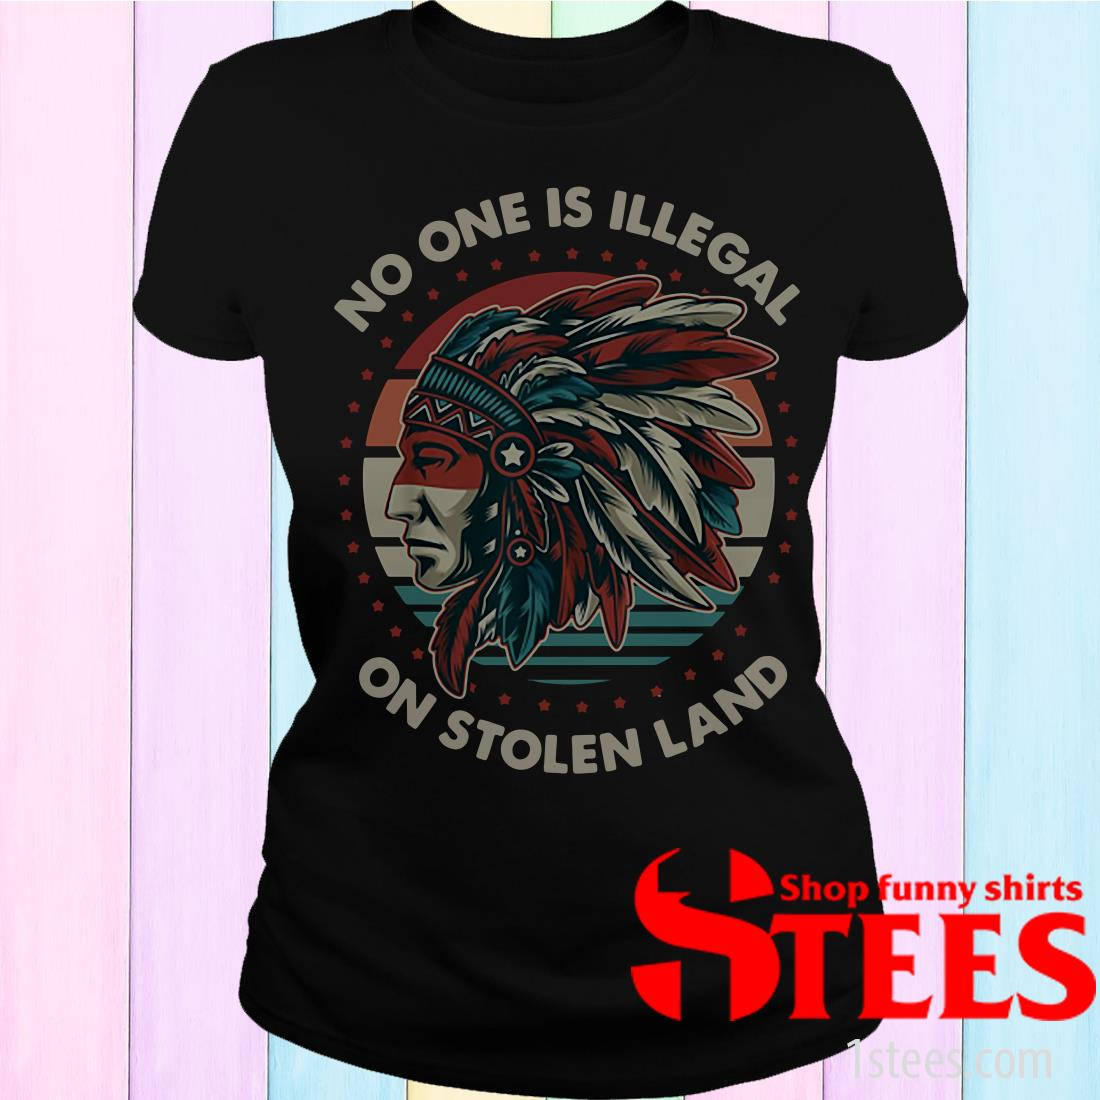 Native America No One Is Illegal On Stolen Land Vintage Shirt